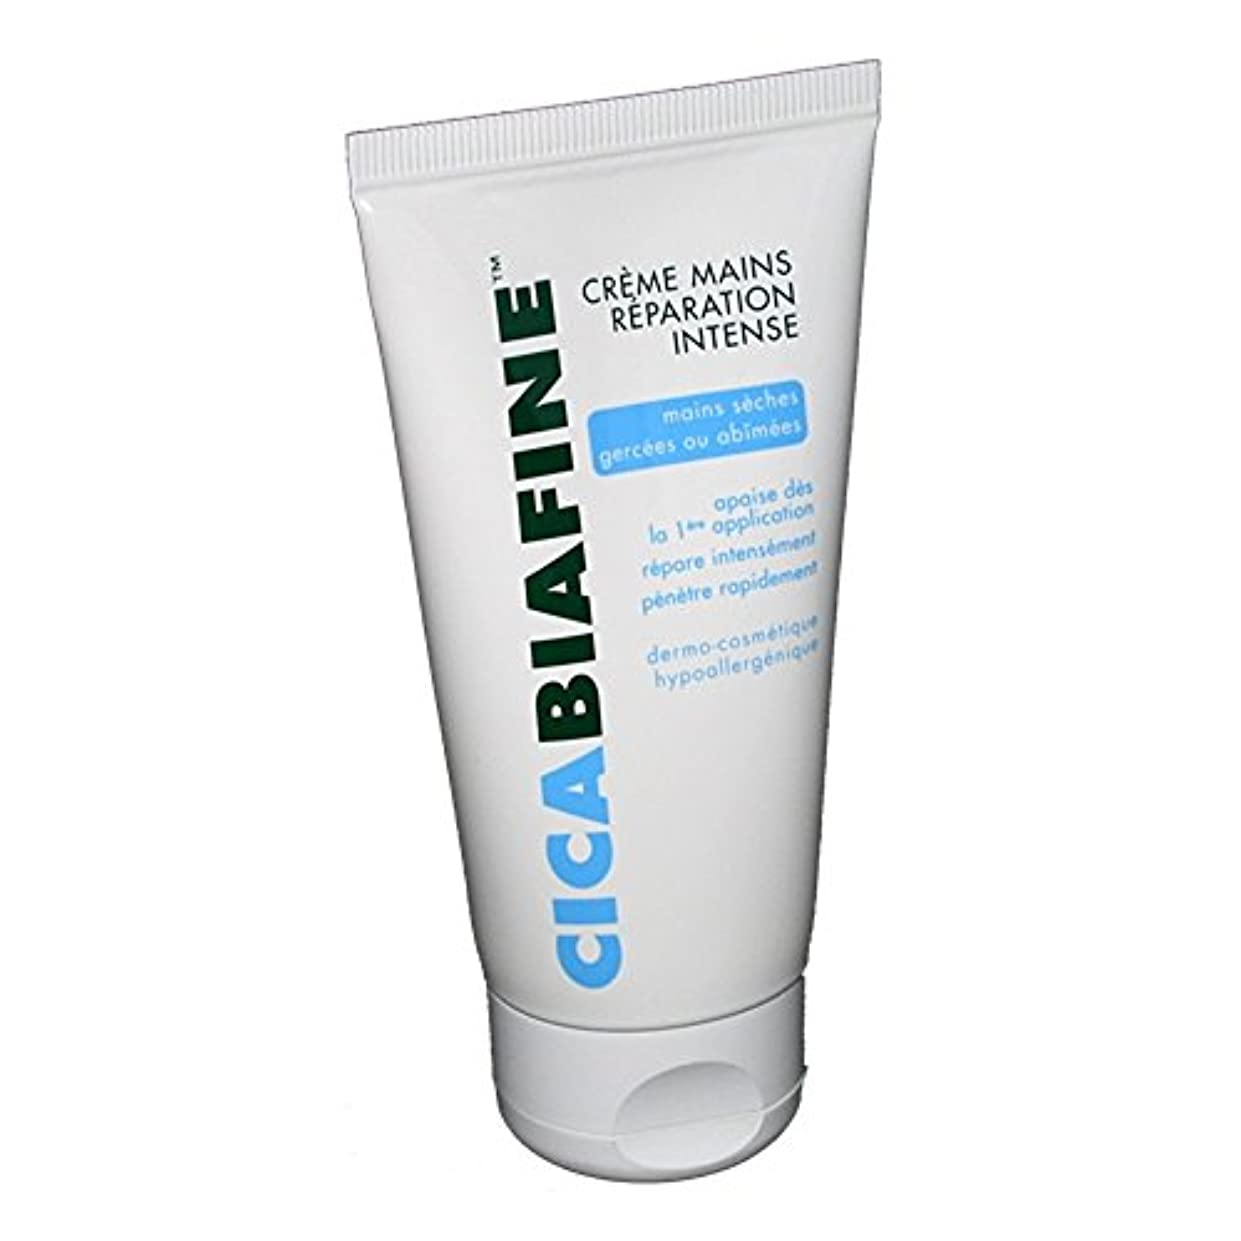 流す標高モニターCICABIAFINE Cr鑪e Mains R駱aration Intense (75 ml)